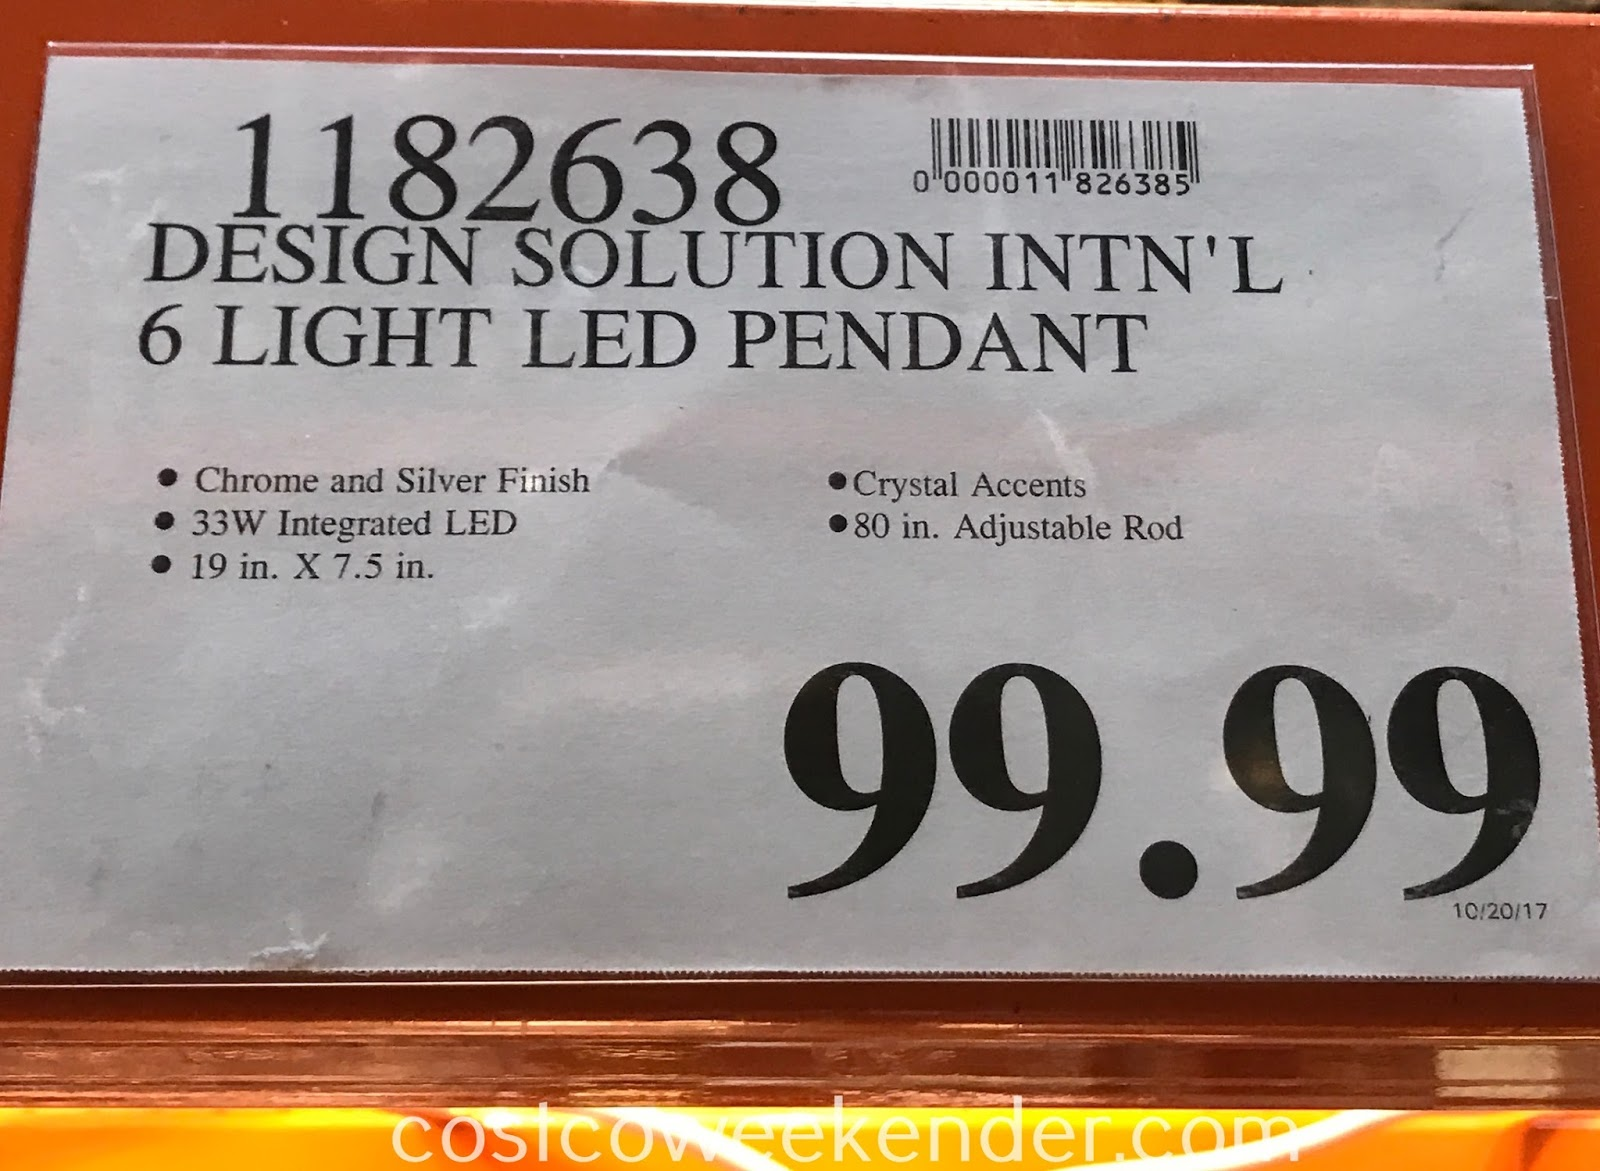 Deal for the Design Solution International 6 Light Adjustable Pendant at Costco